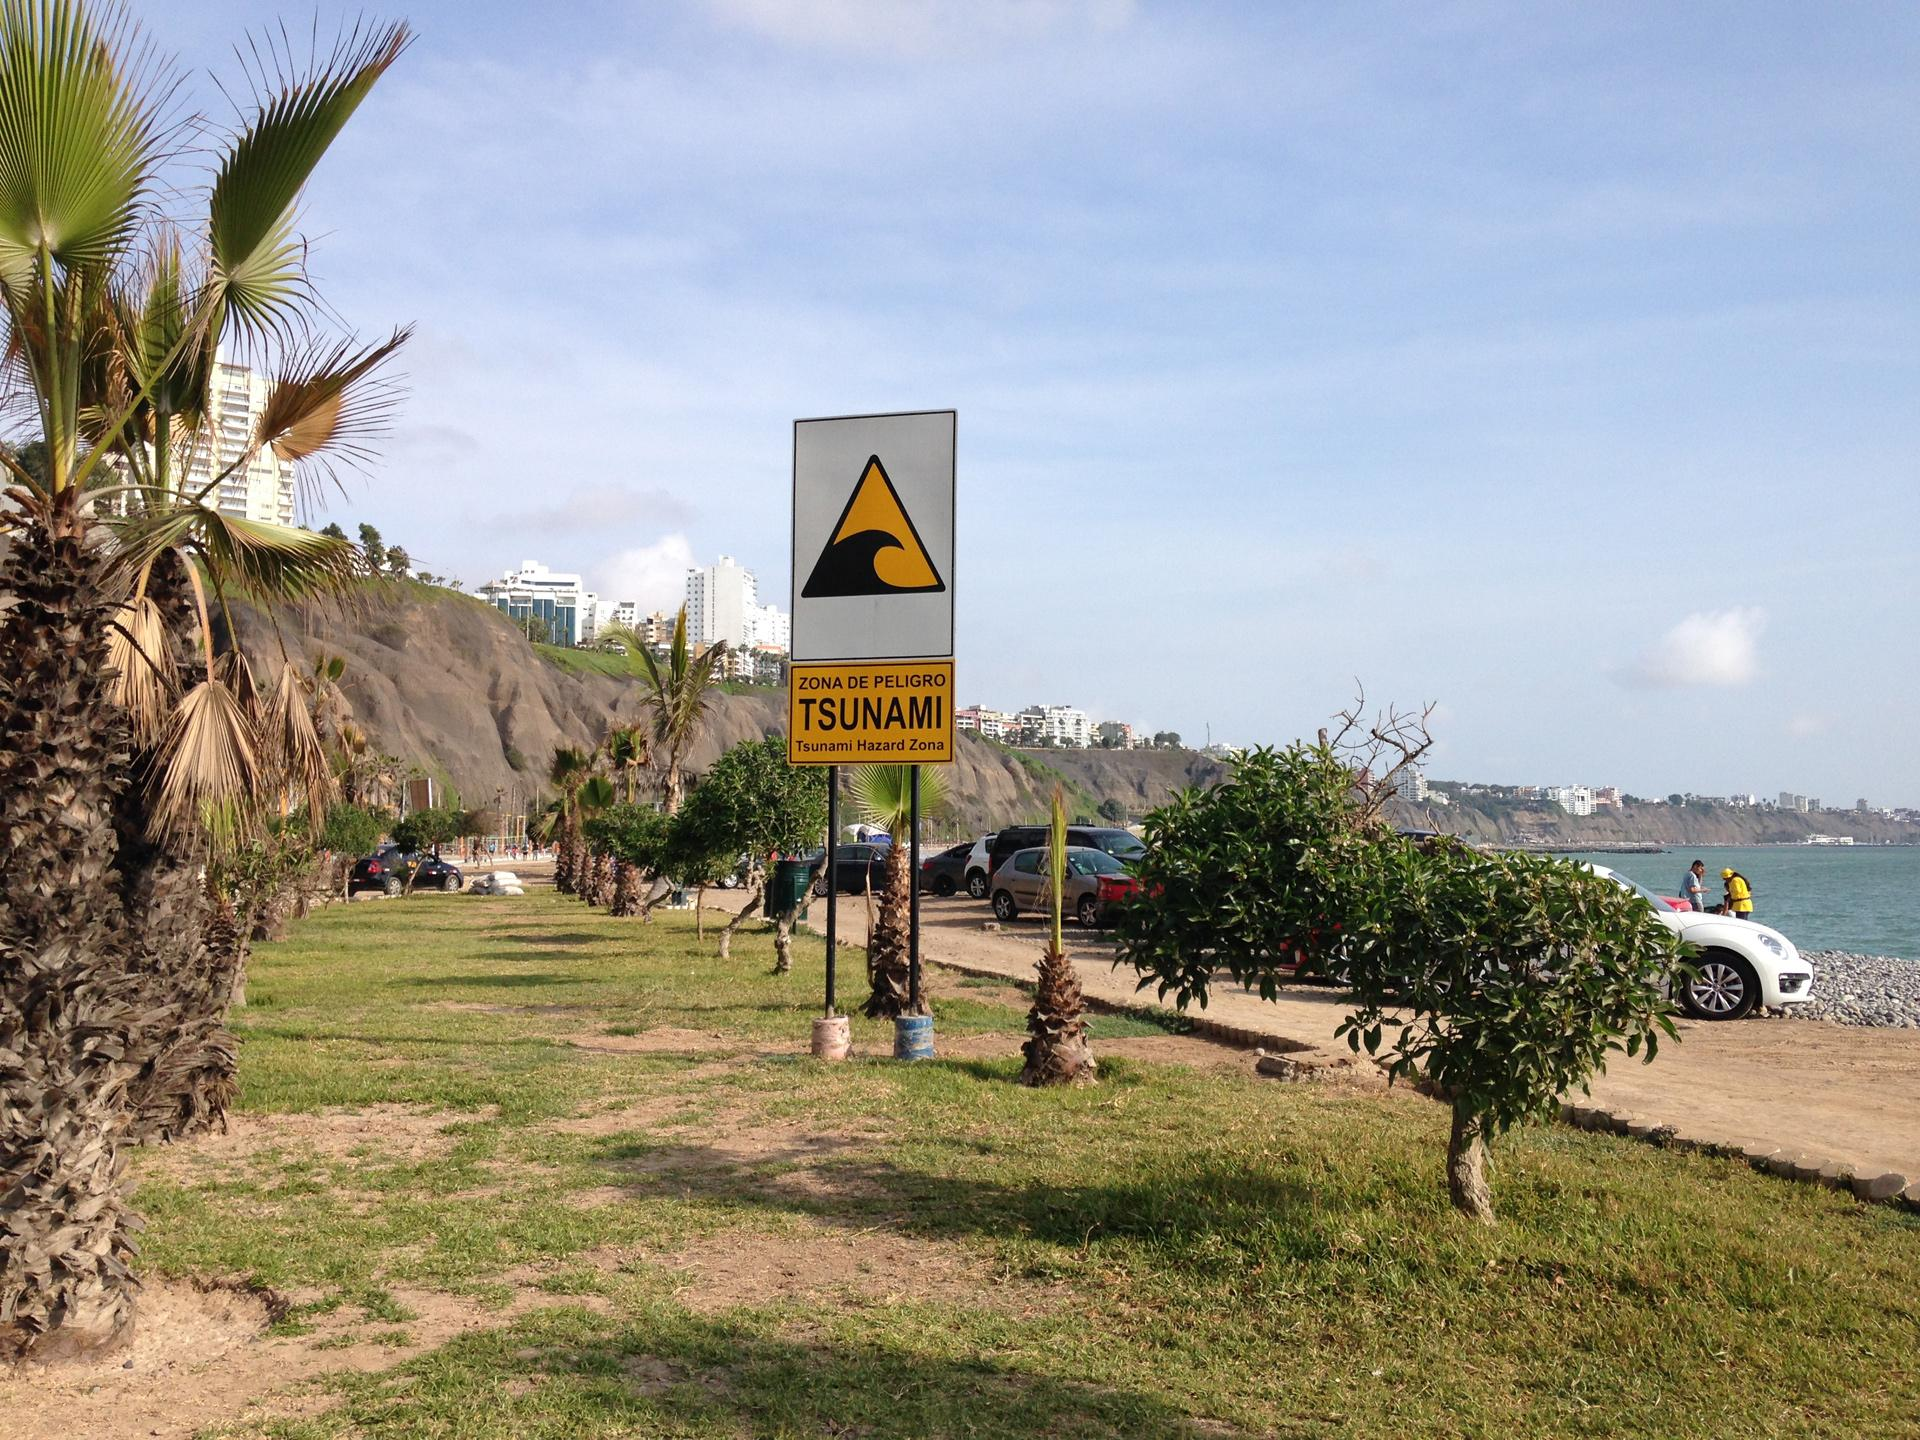 Picture of a tsunami warning sign on the beach of Lima, Peru